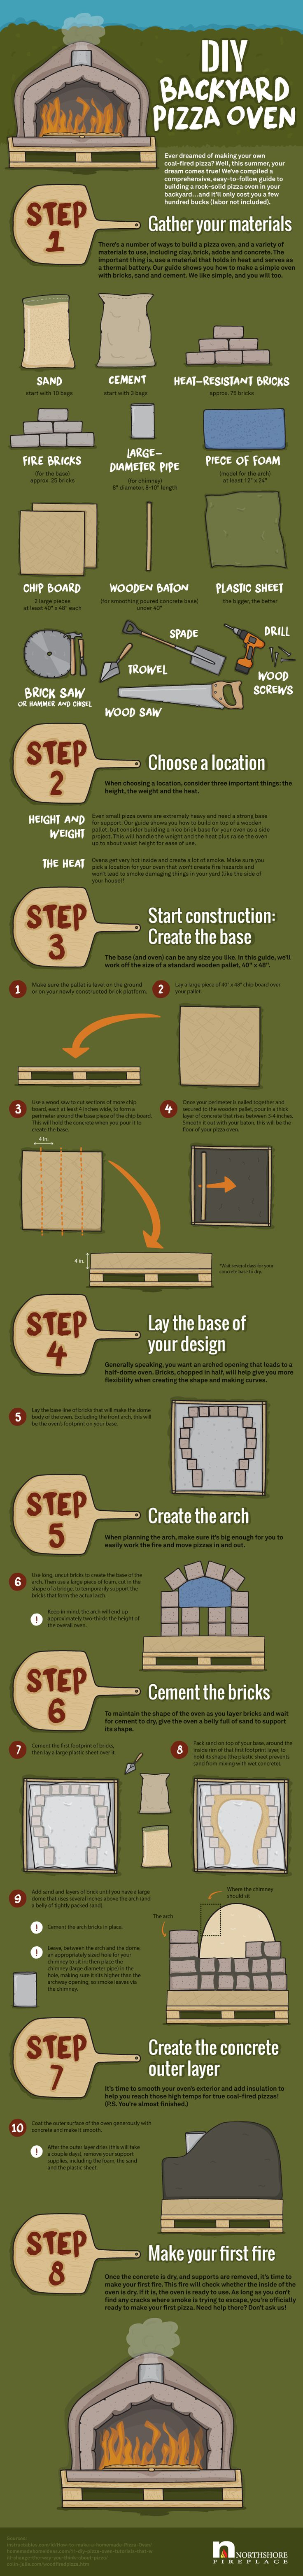 DIY Pizza Oven Hacks #Infographic